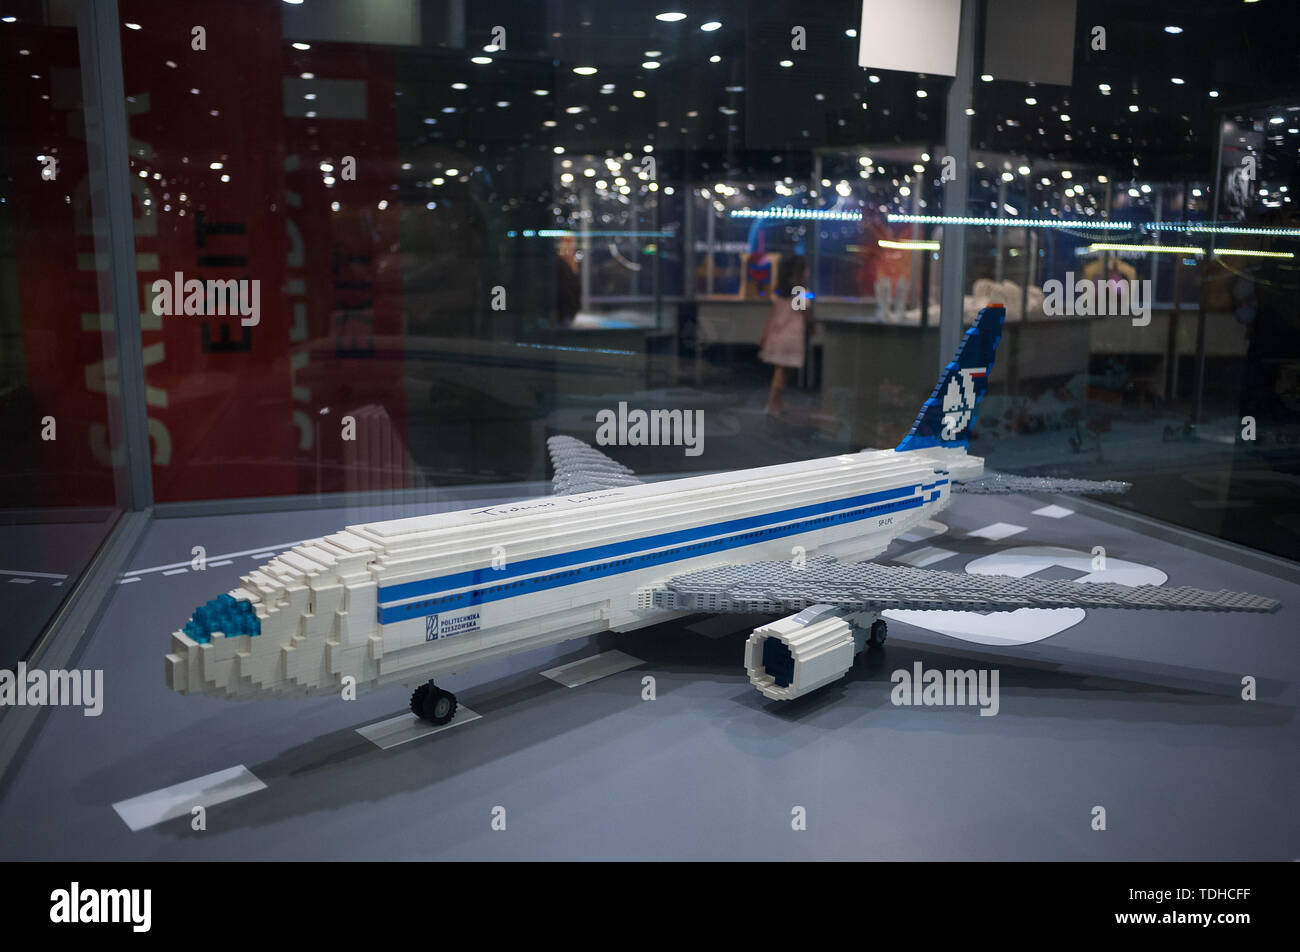 Malaga, Spain. 16th June, 2019. A mockups of a plane displayed inside a glass cabinet during the exhibition. The LEGO exhibition is a temporary exhibition, the most biggest of Europe about figures of LEGO, showing different mockups mounted with more than 5 million of LEGO pieces to large scale such as Titanic ship, replicas of basketball players, the human body, characters of the film Star Wars, MARVEL and others. Credit: SOPA Images Limited/Alamy Live News Stock Photo